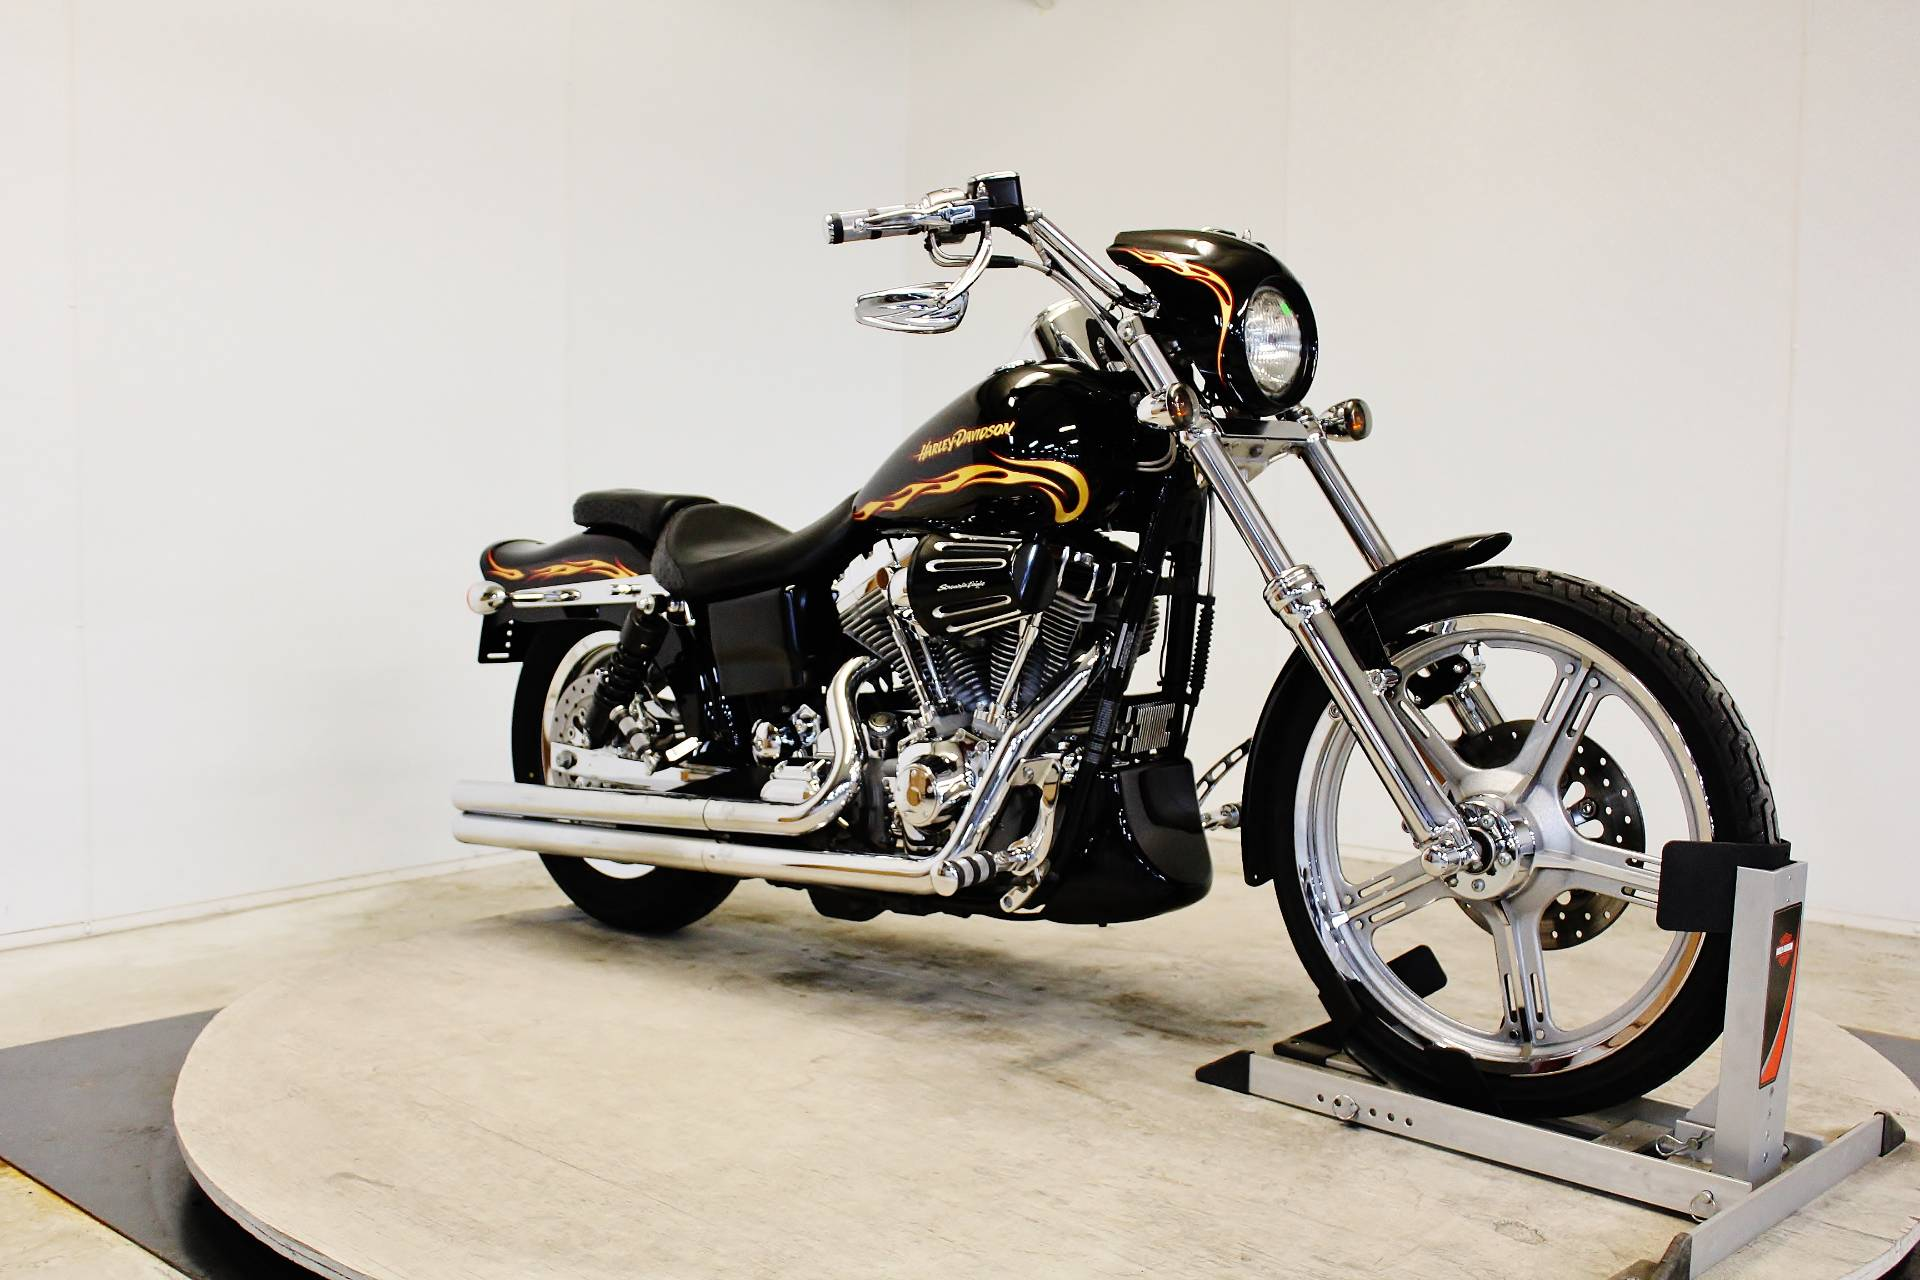 2002 Harley-Davidson FXDWG3 Dyna Wide Glide in Pittsfield, Massachusetts